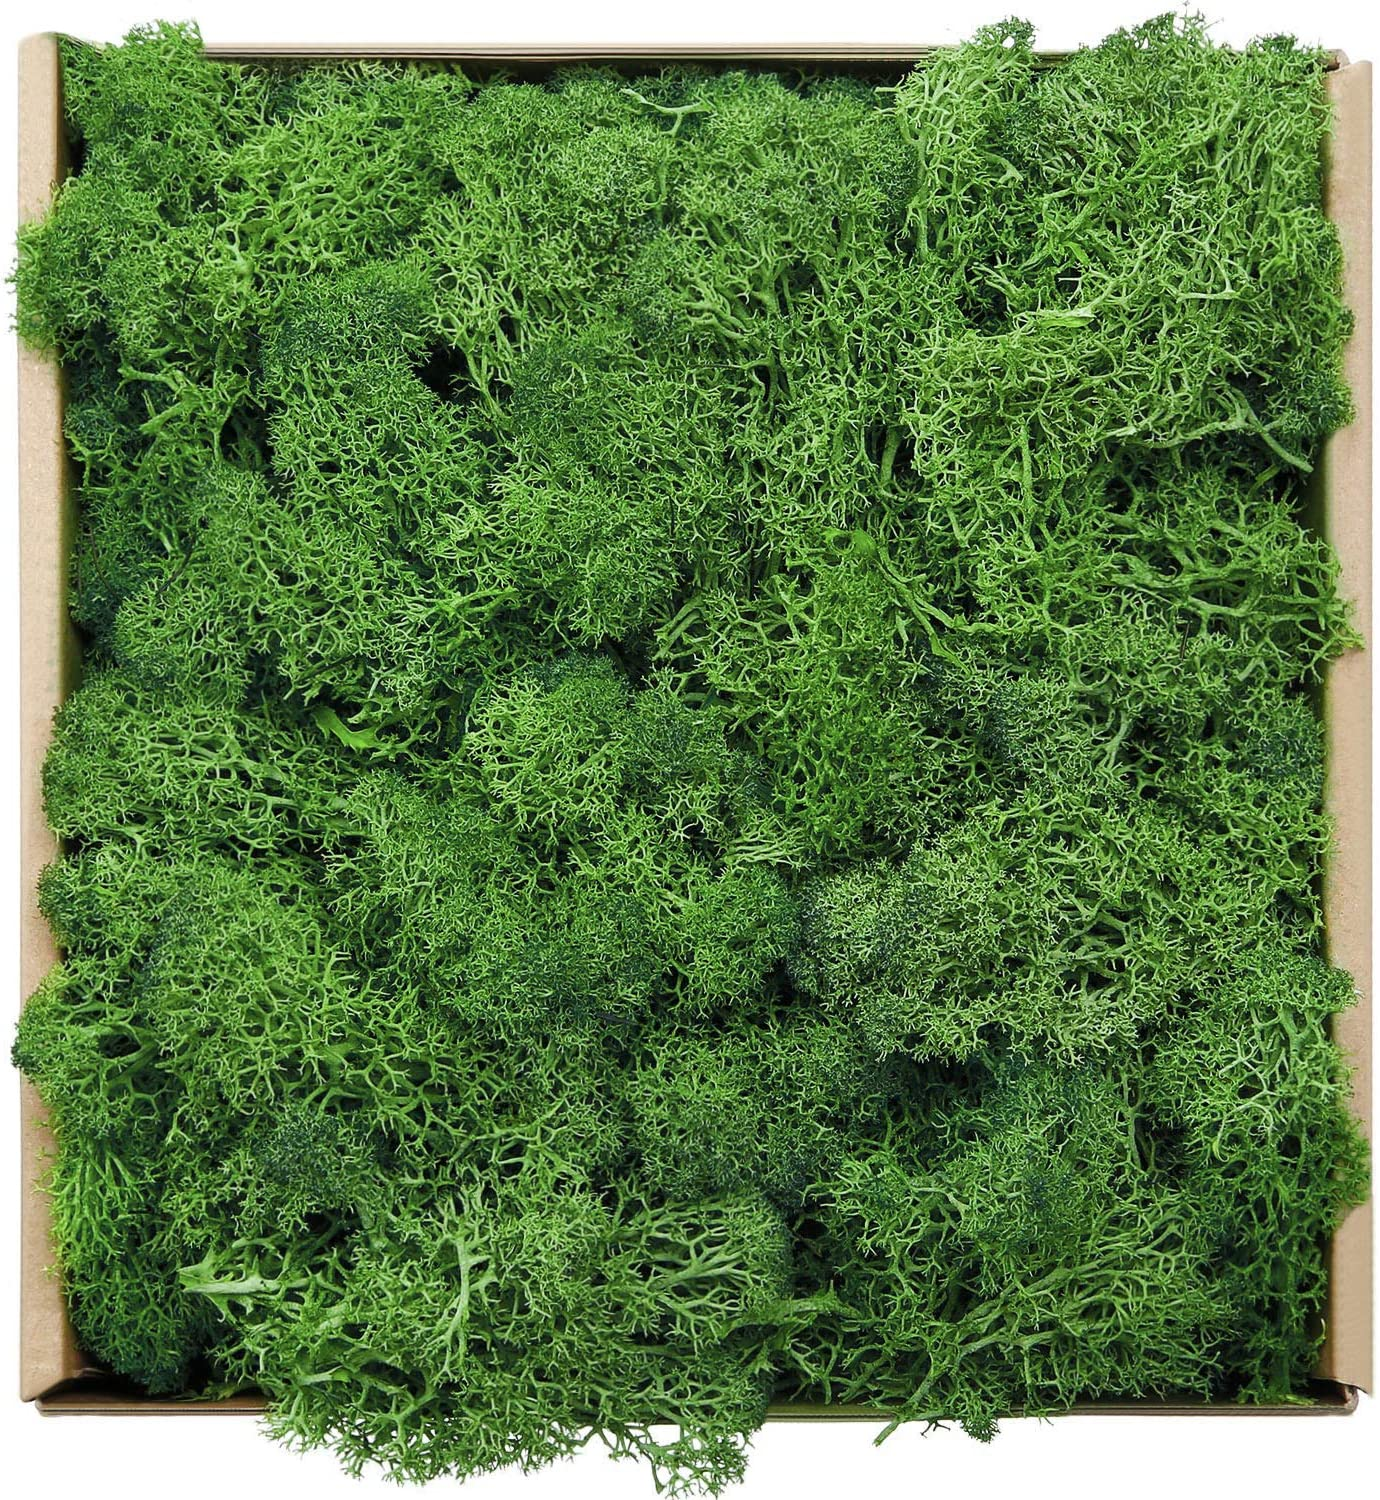 /… or Any Craft or Floral Project Sheet Moss-Green 6 OZ Green Sheet Moss Dried Natural for Fairy Gardens Terrariums